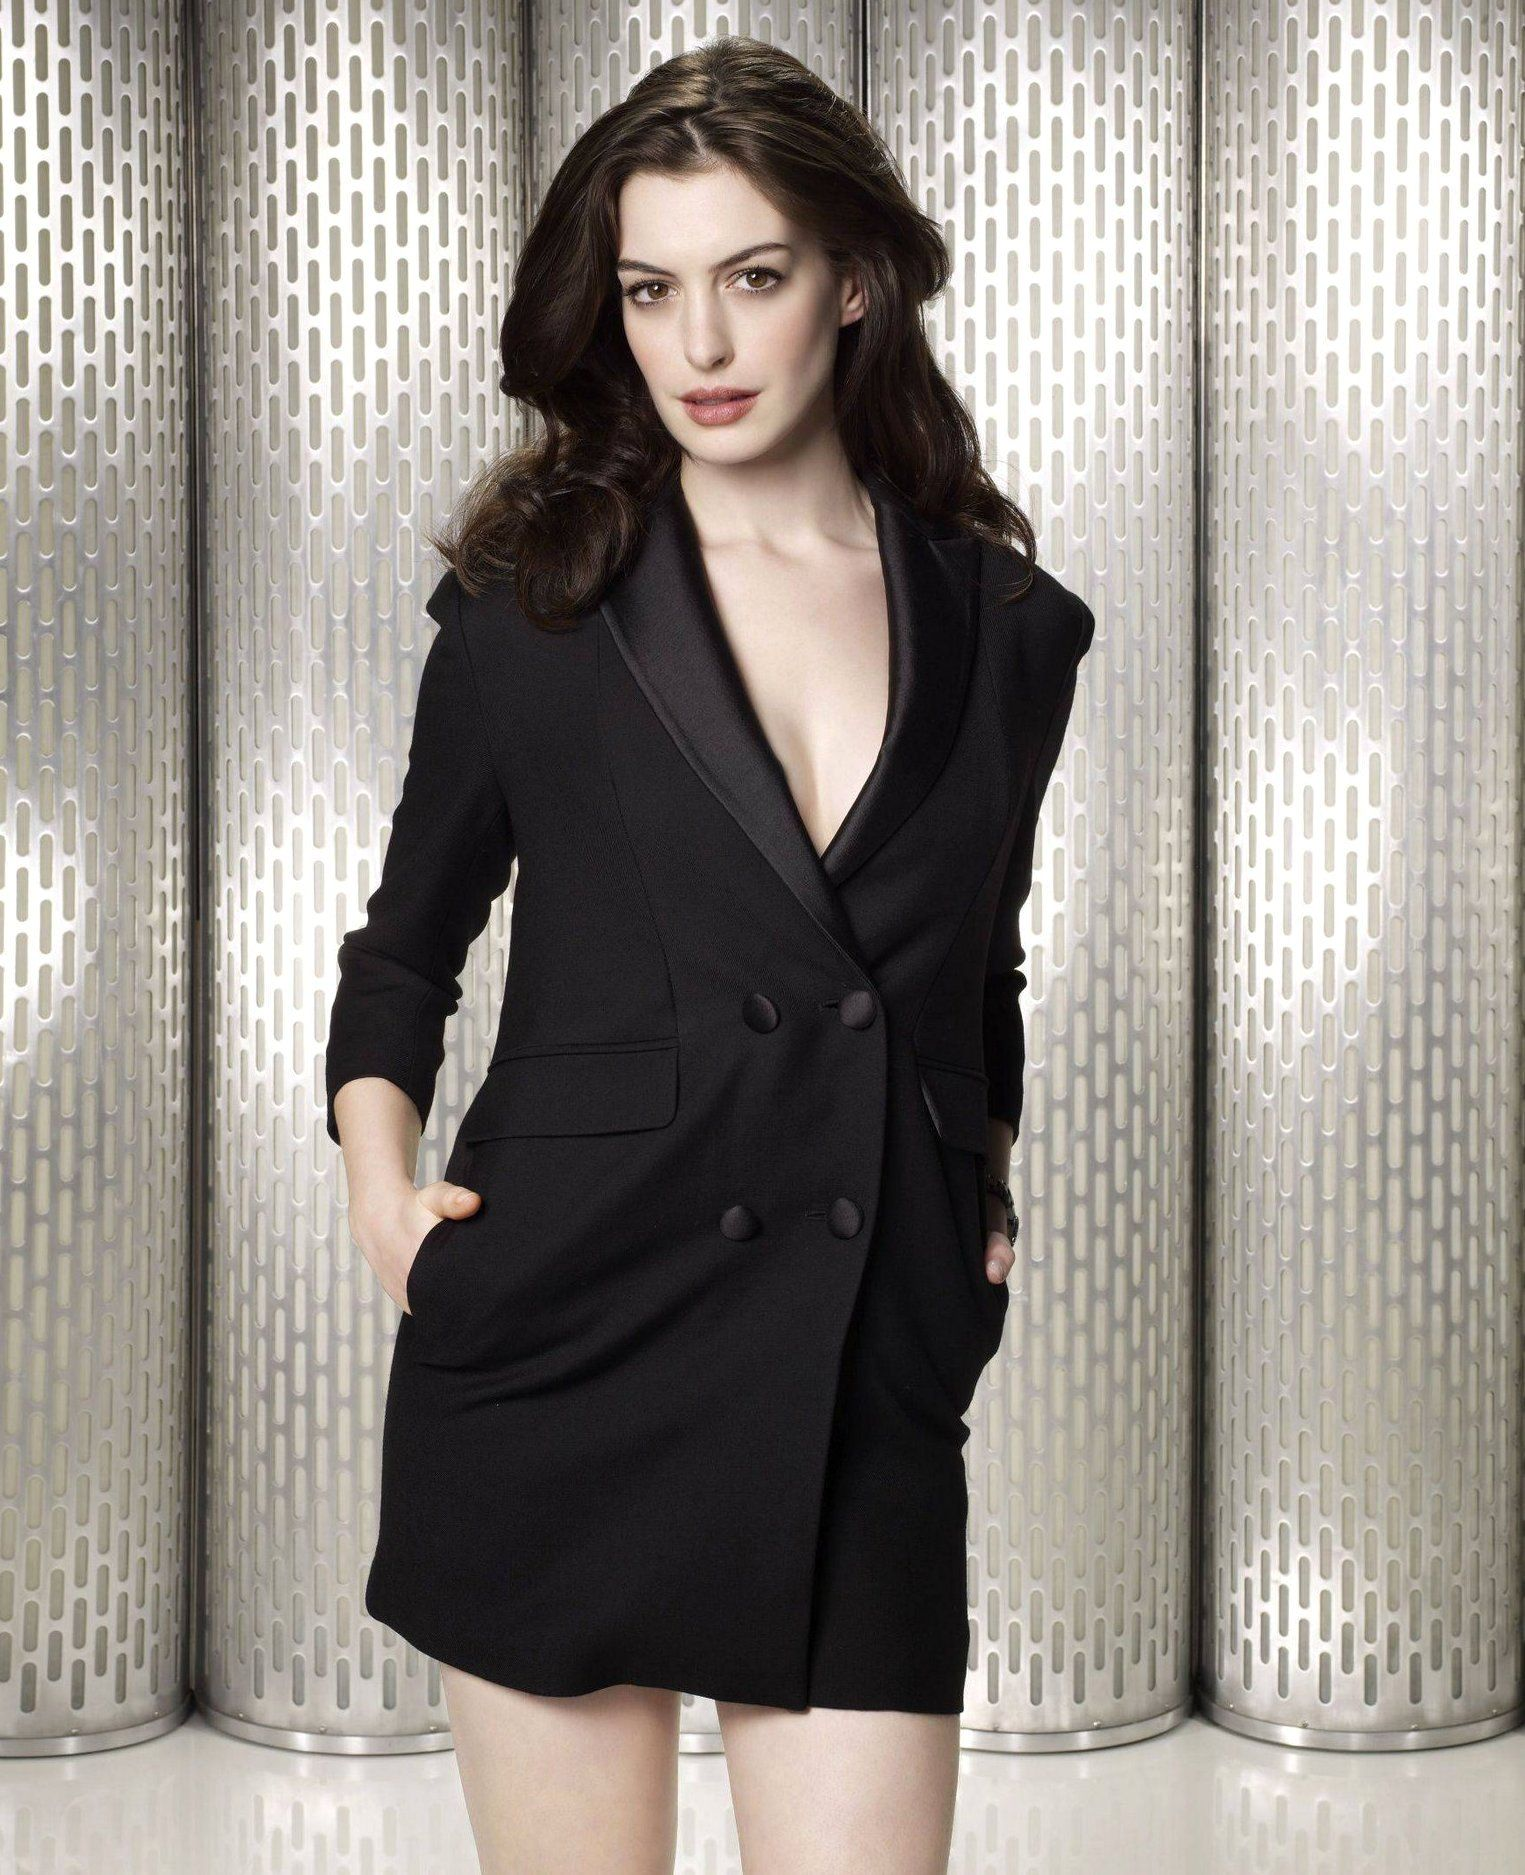 Anne Hathaway Get Smart: Pin By Jonathan Hampe On Anne Hathaway Gorgeous